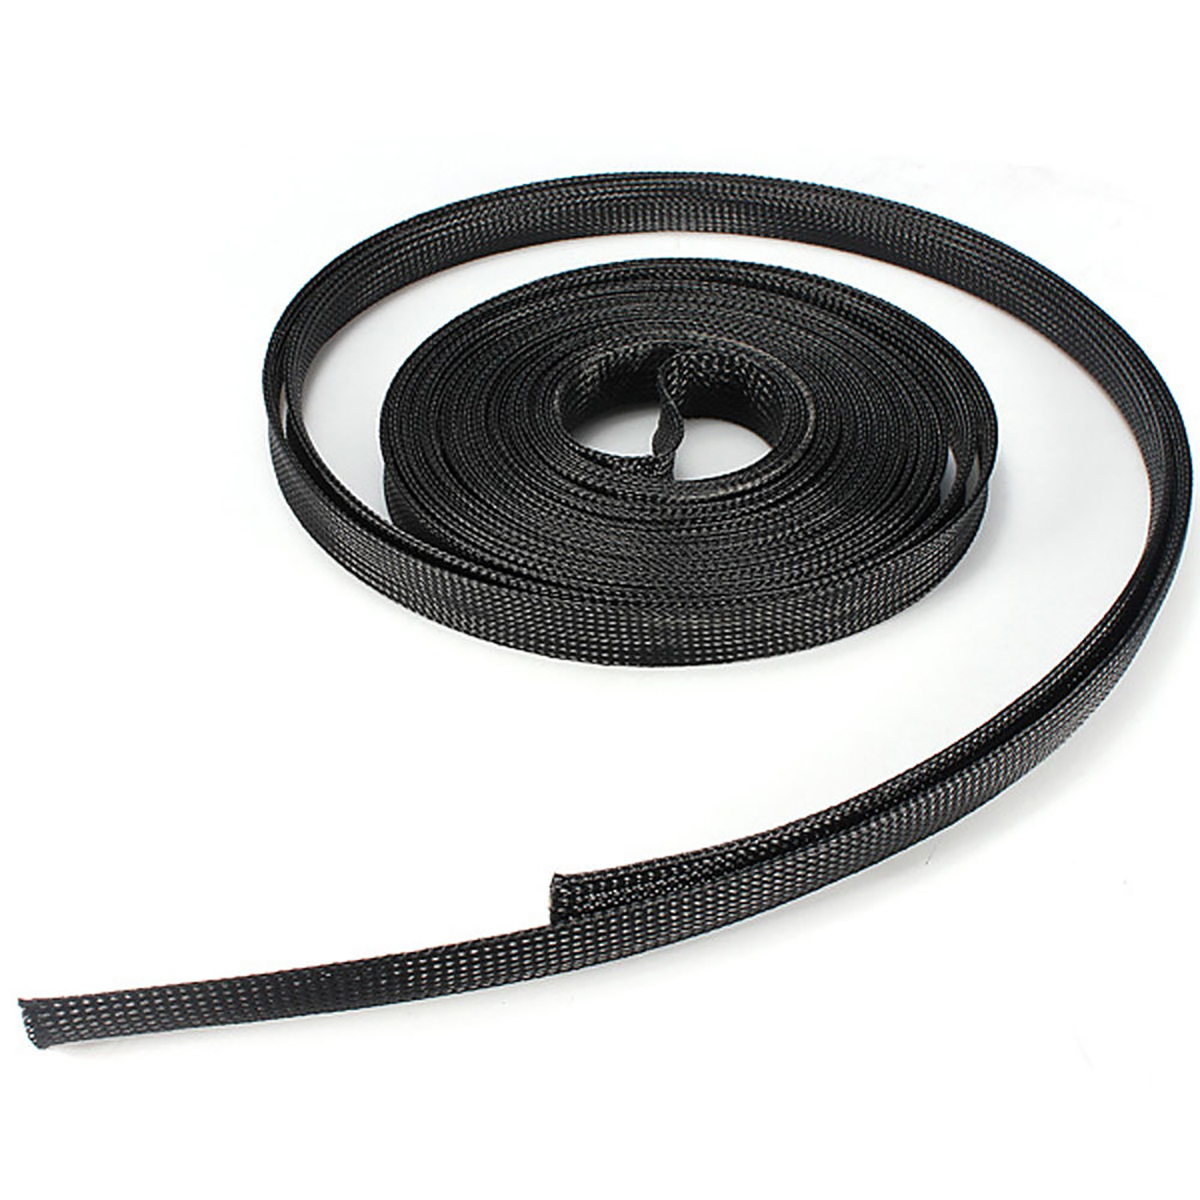 Black Braided Wire Sleeve Mesh Protecting PET Nylon Braided Cable Sleeve 6/8/10/12/15mm*10m Length Mayitr Wiring Accessories